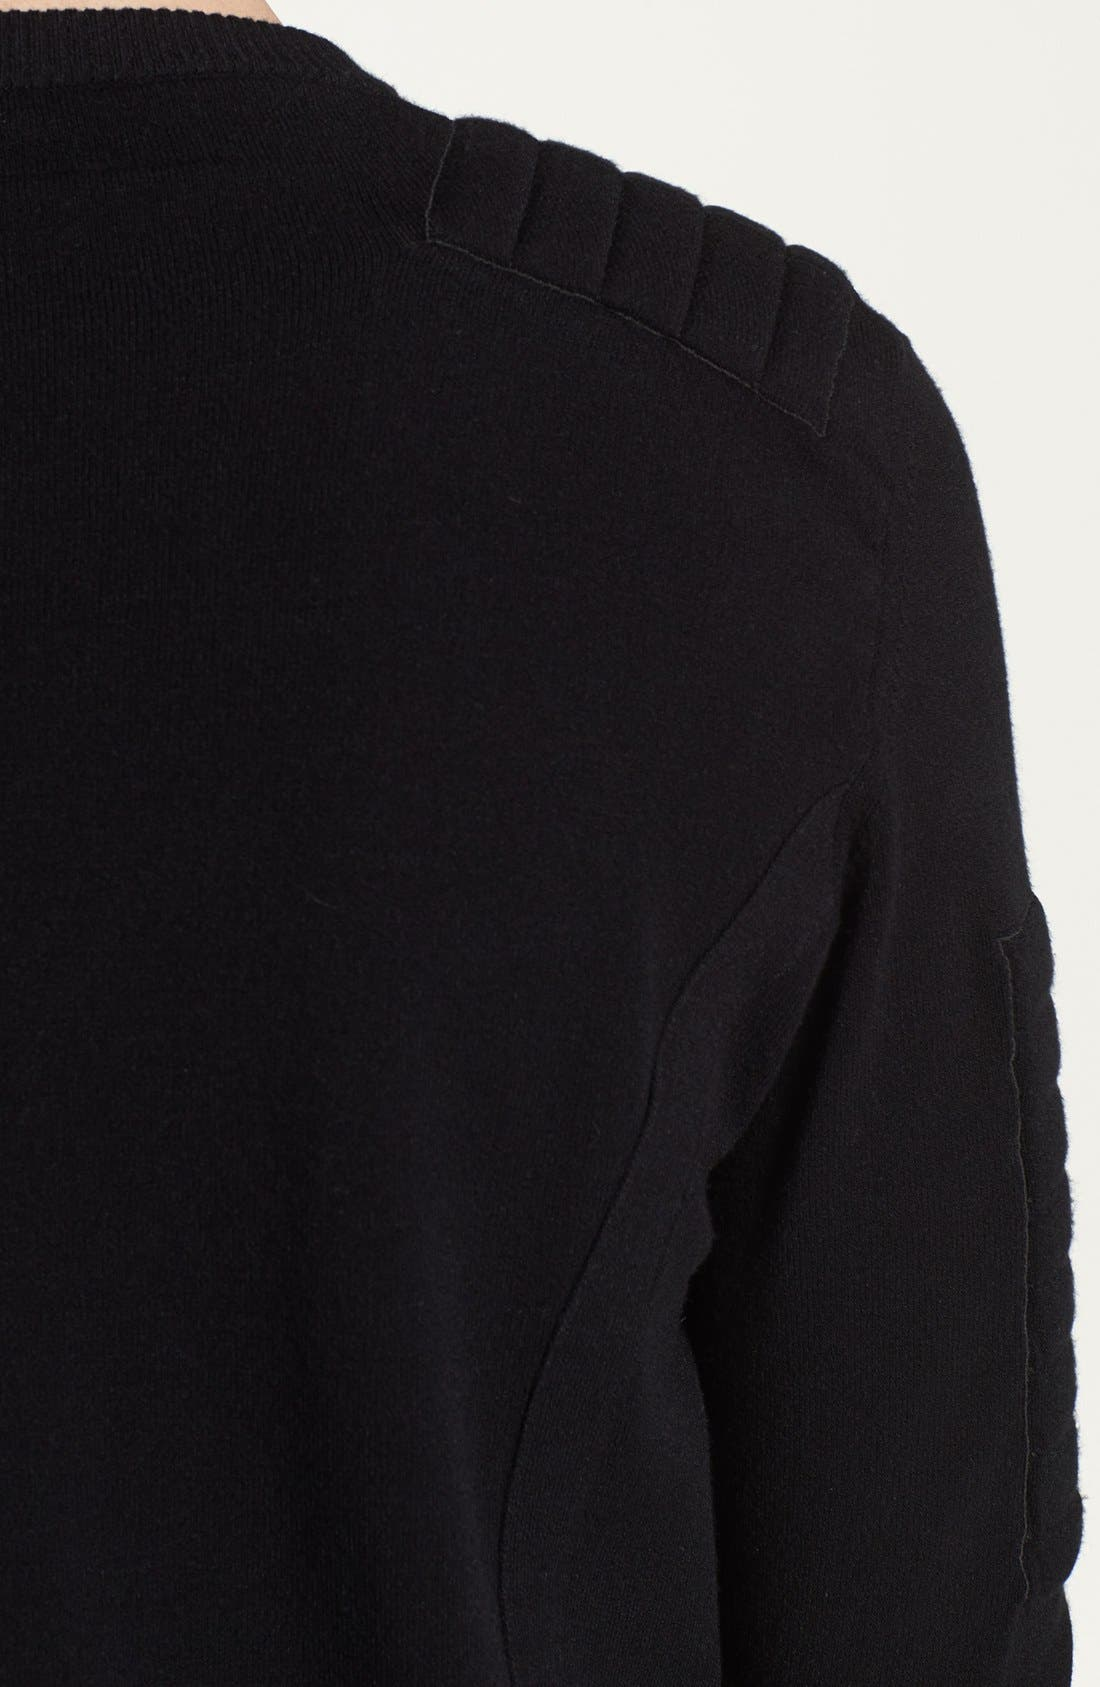 Alternate Image 3  - Pierre Balmain Padded Crewneck Sweater (Online Only)